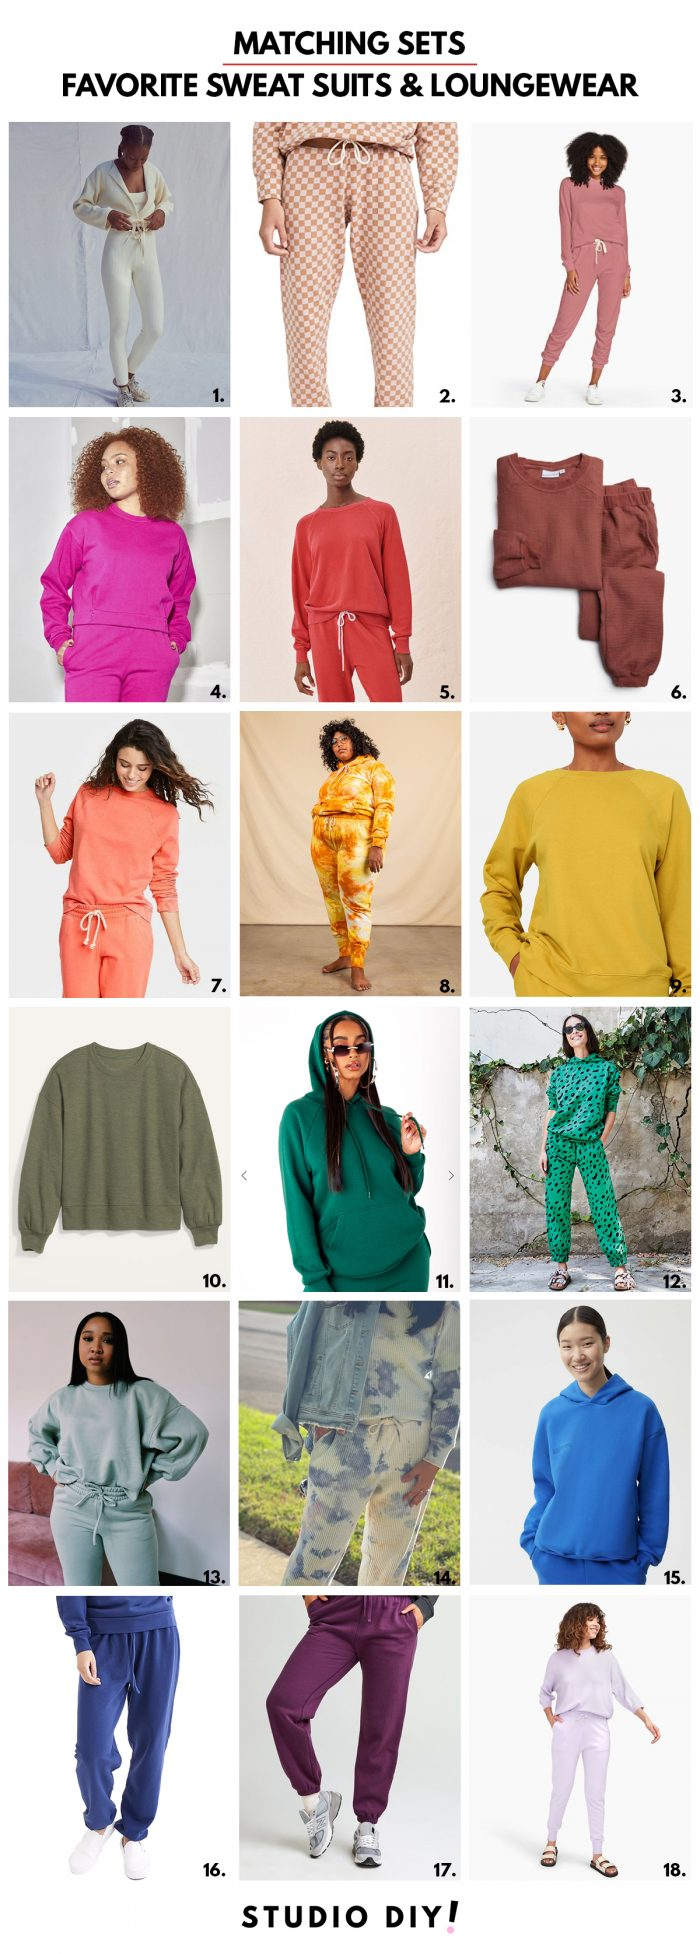 Matching Sweat Suits and Loungewear in Rainbow Colors